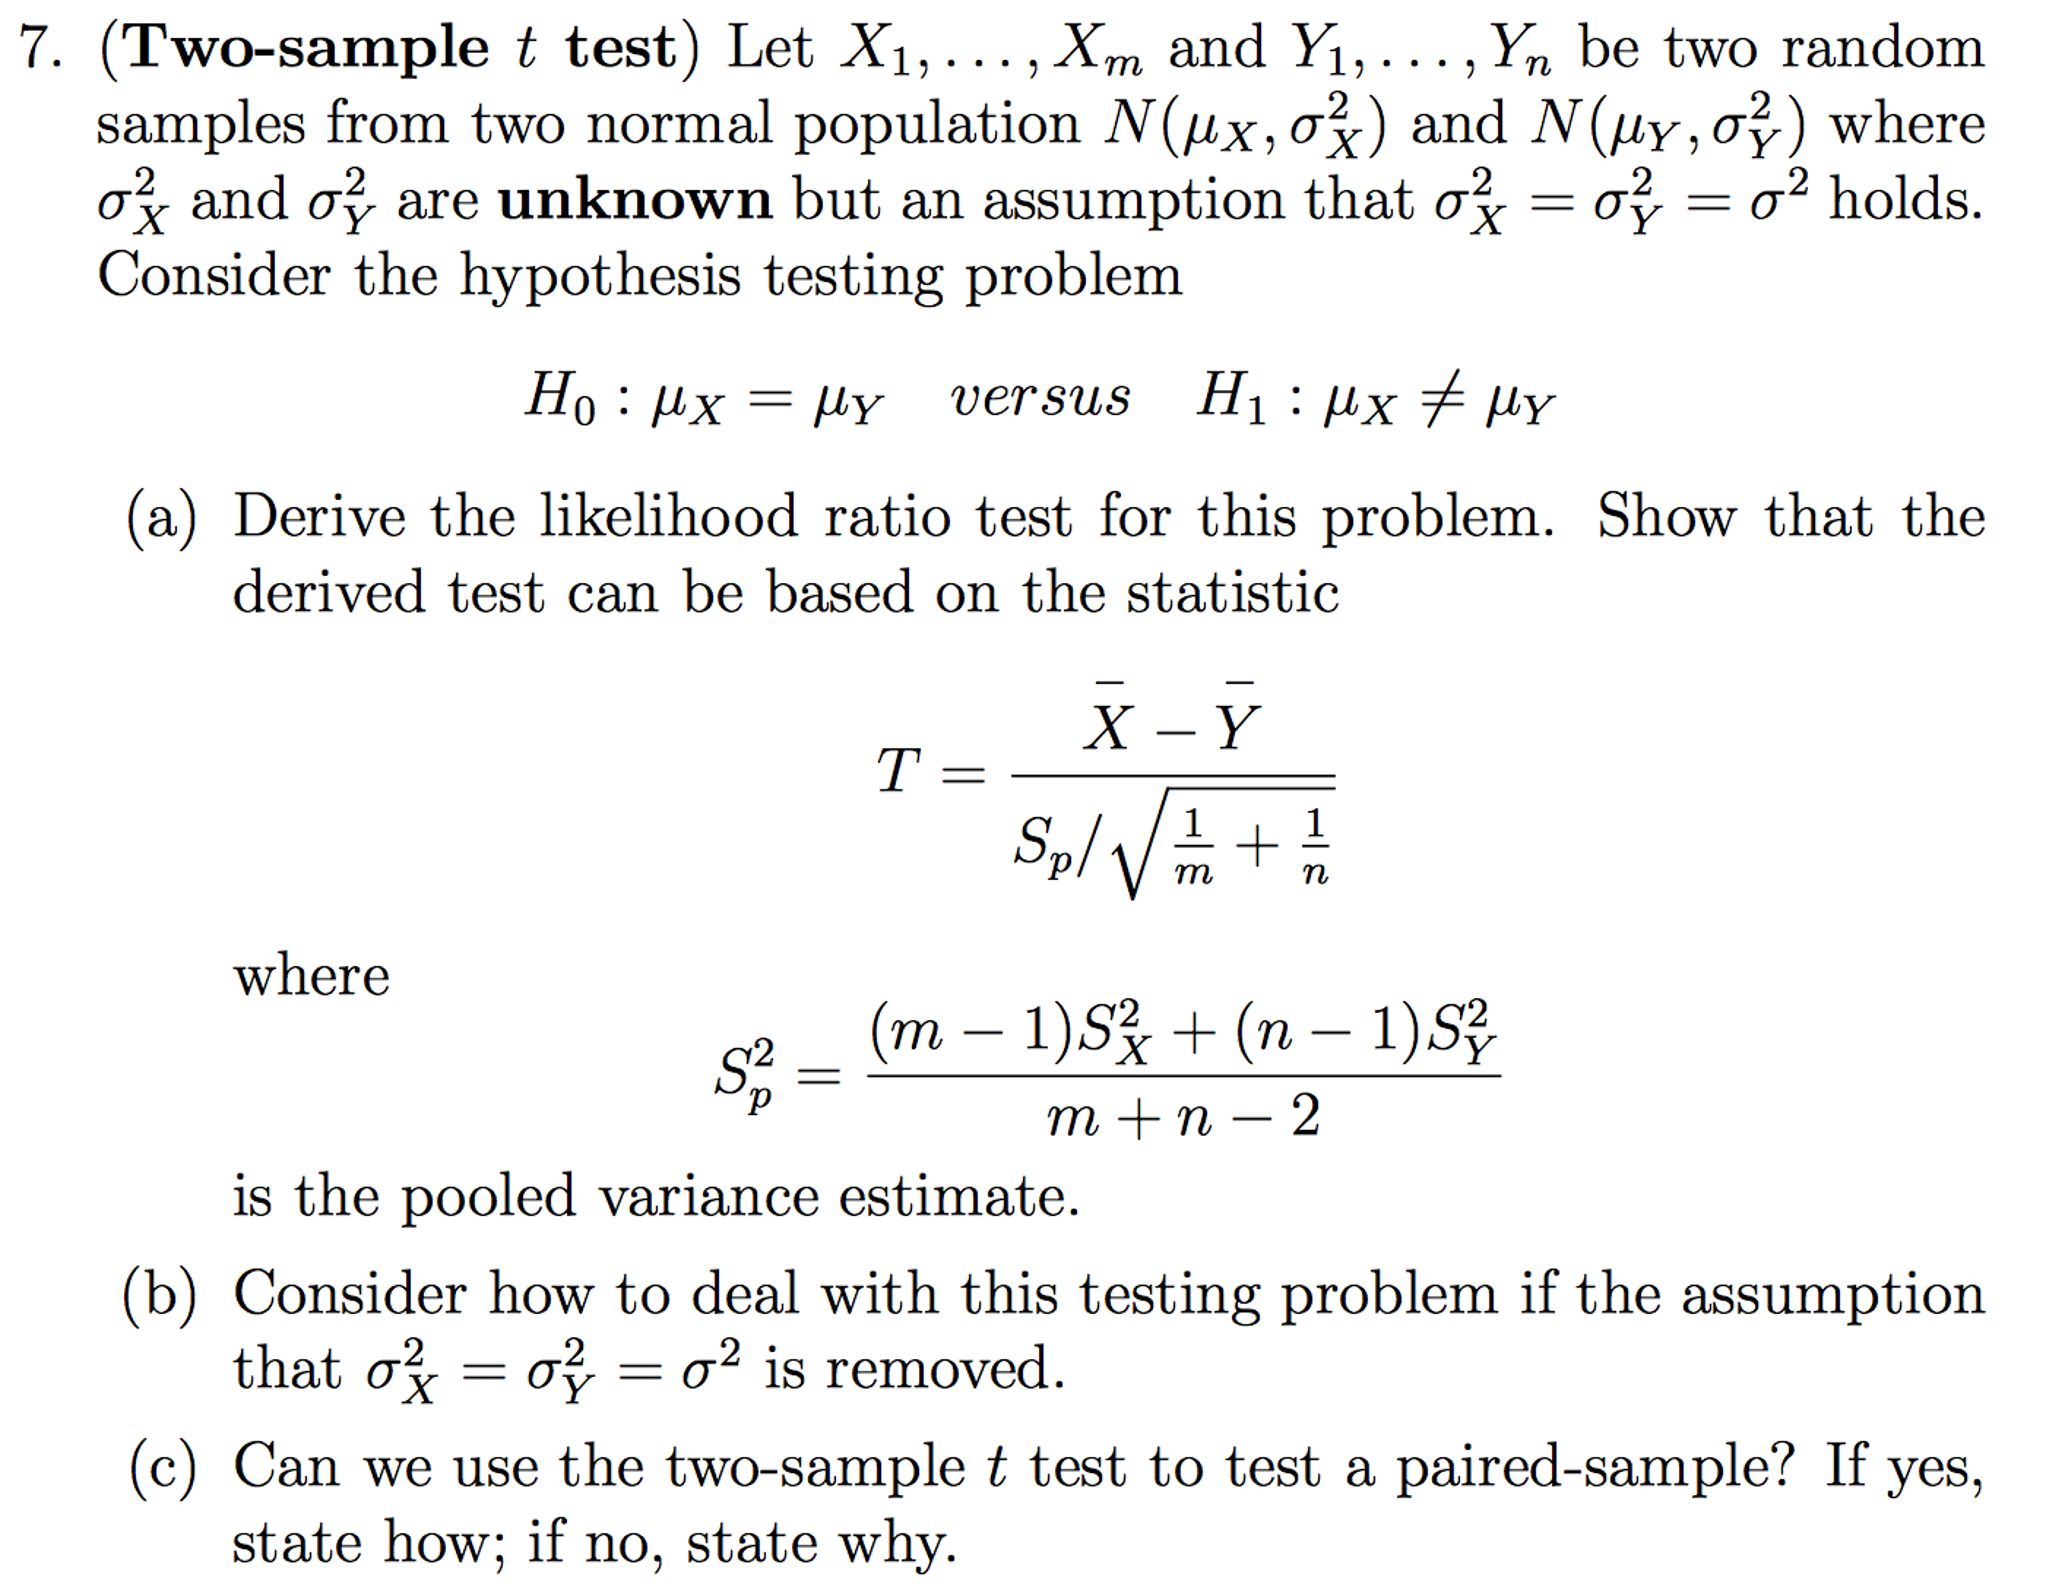 Question: Can We Use The Two-sample T Test To Test... | Chegg.com